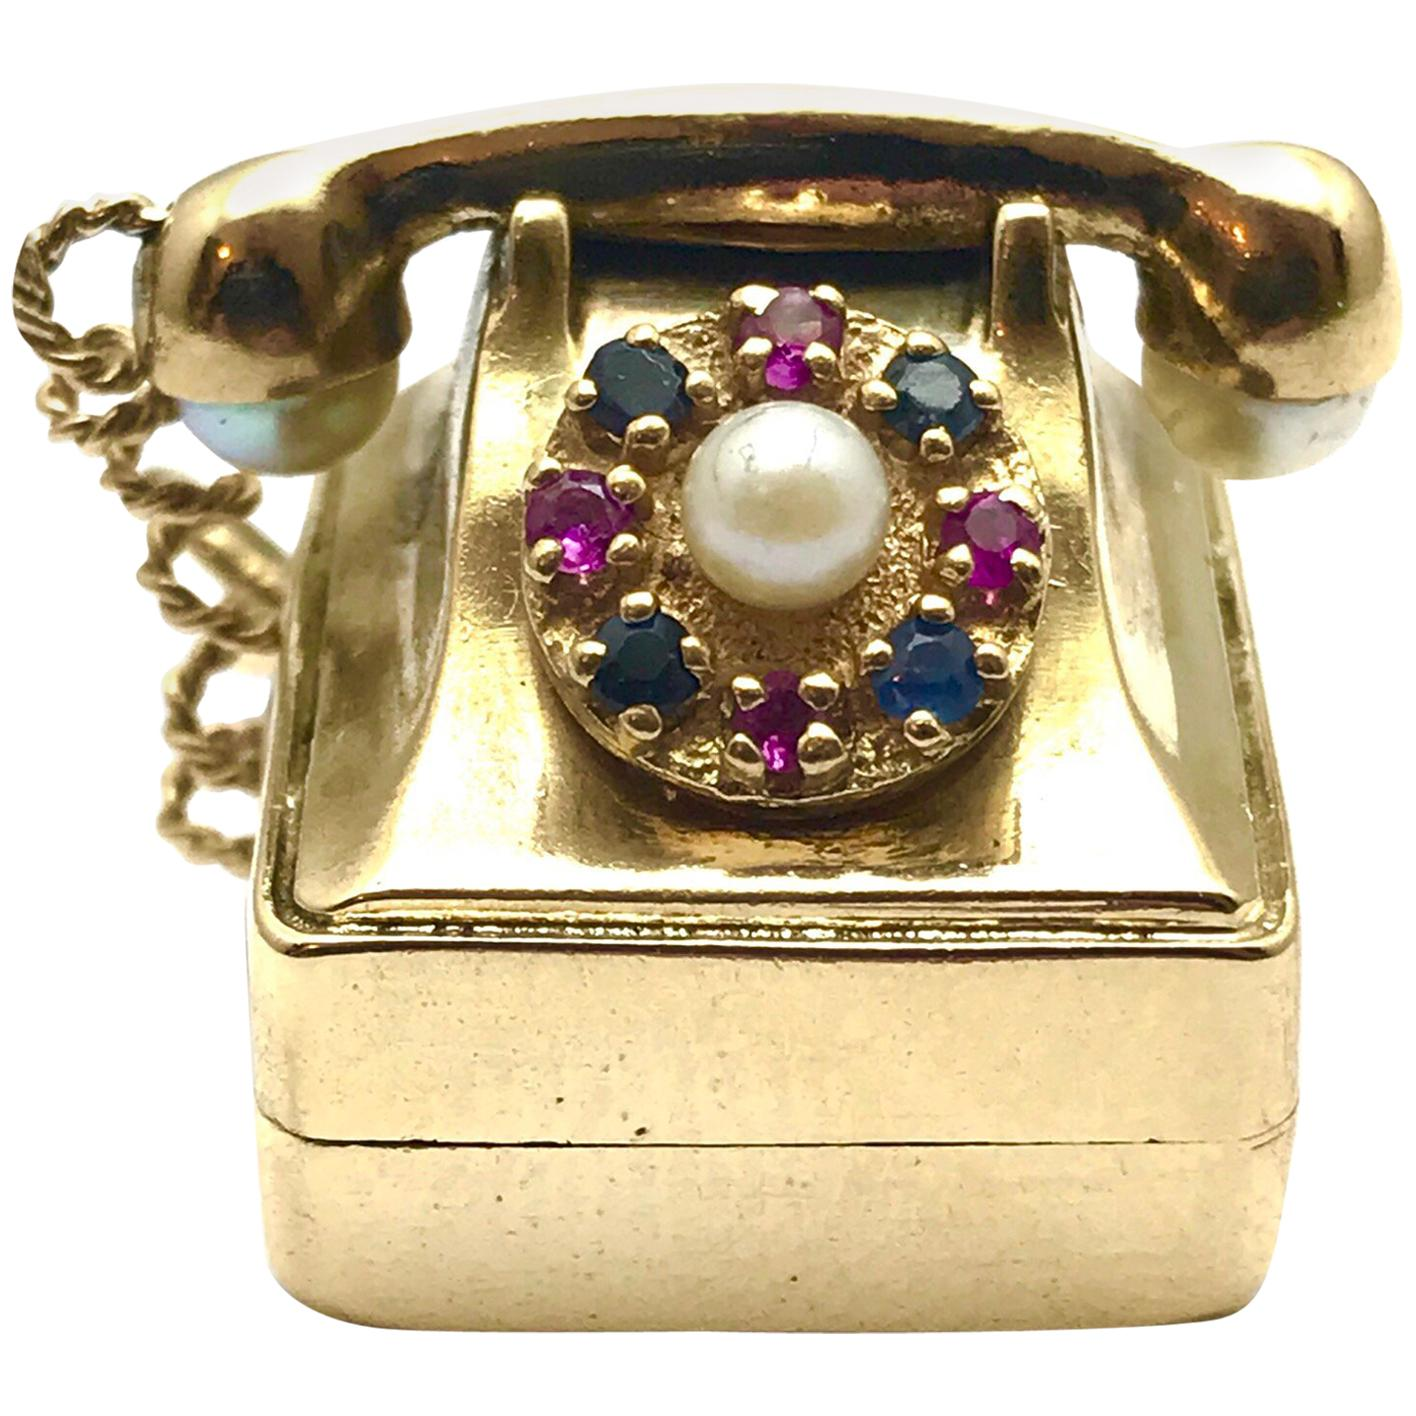 pearl ruby and sapphire yellow gold musical rotary phone charm at 1stdibs [ 1500 x 1500 Pixel ]